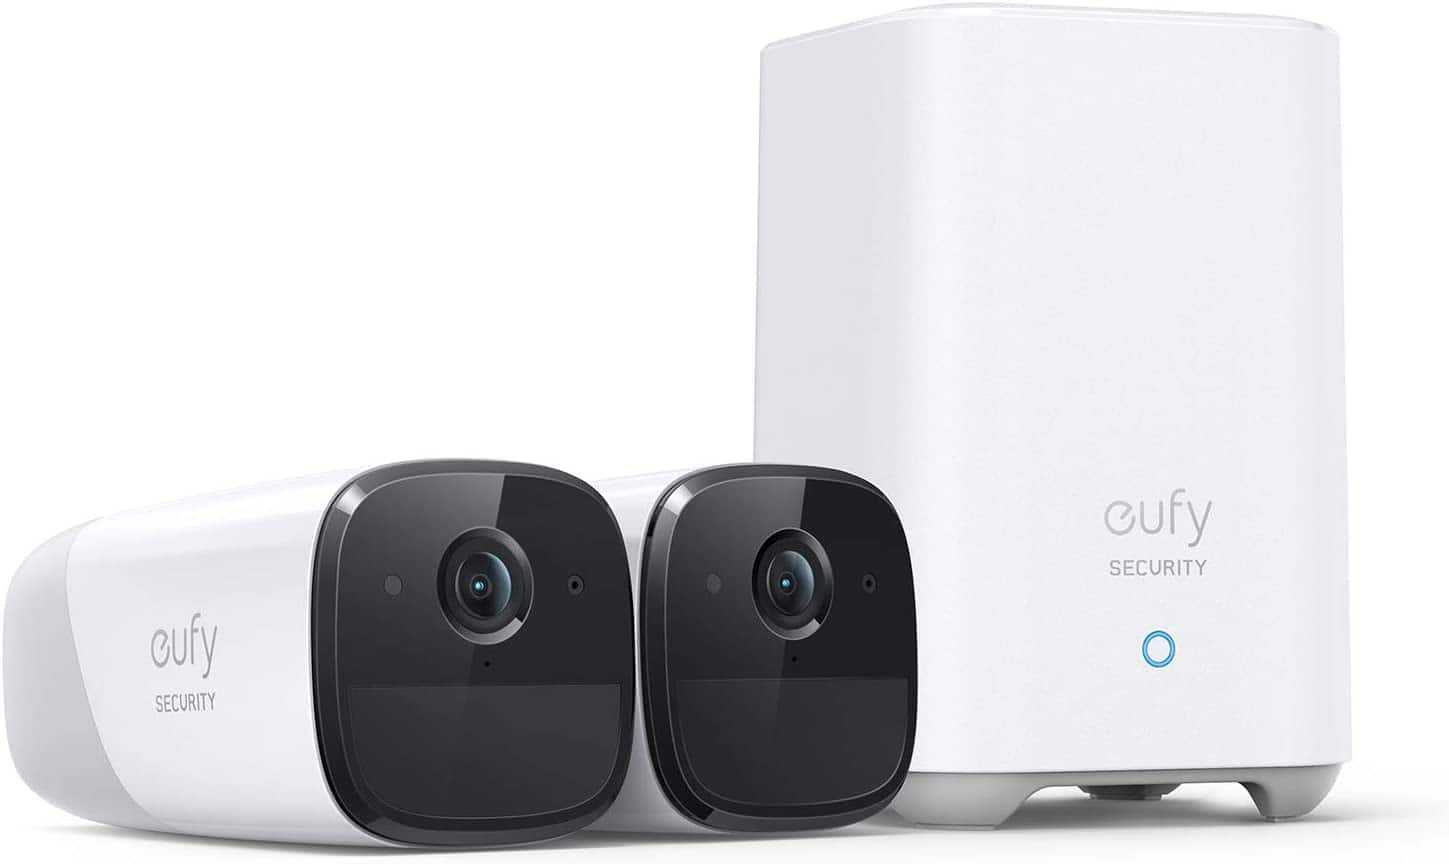 Anker Eufy - eufyCam 2 Pro 2K Indoor/Outdoor 2-Camera Security System $249.99